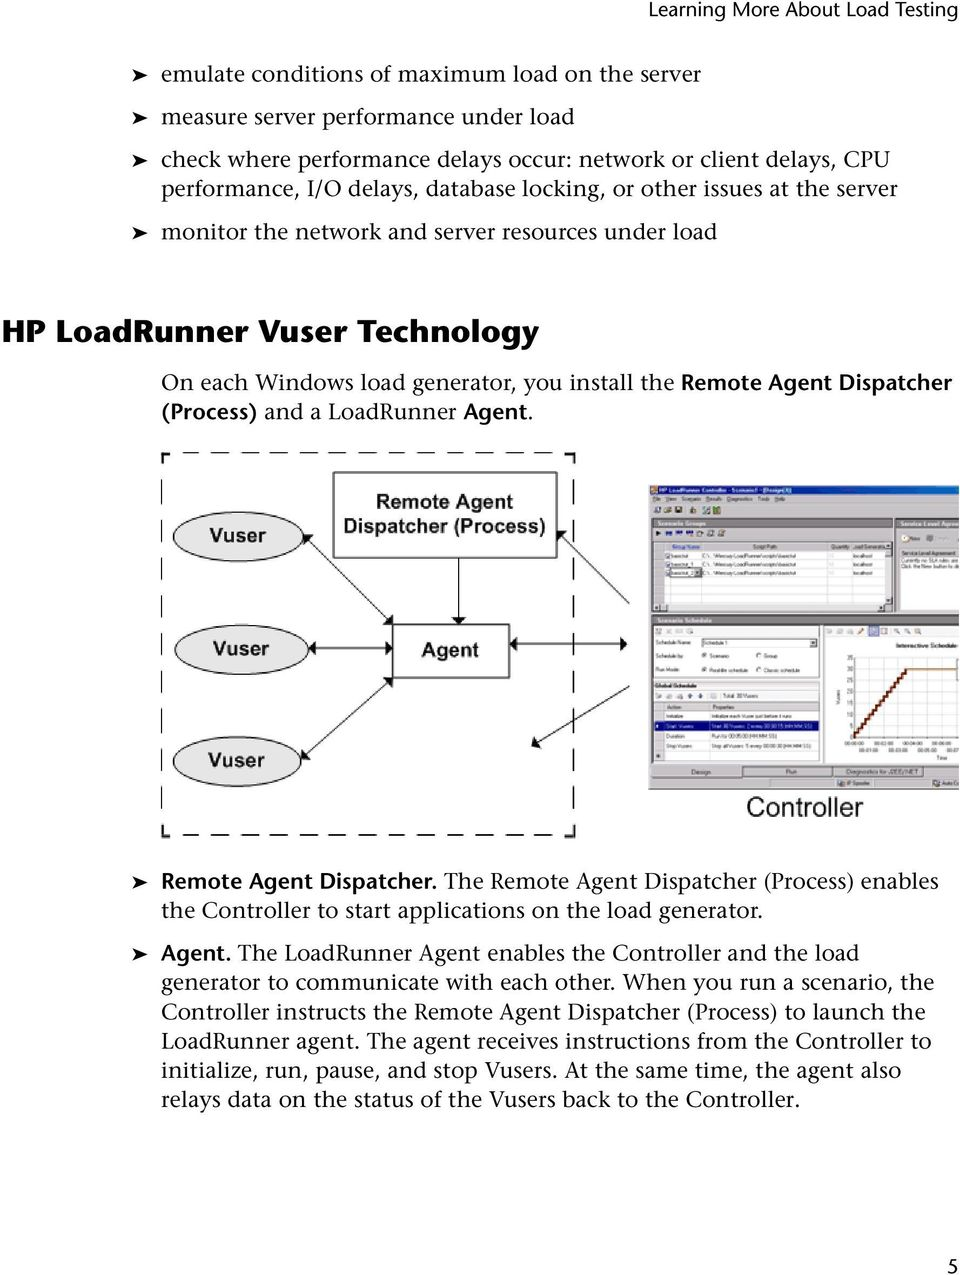 a LoadRunner Agent. Remote Agent Dispatcher. The Remote Agent Dispatcher (Process) enables the Controller to start applications on the load generator. Agent. The LoadRunner Agent enables the Controller and the load generator to communicate with each other.